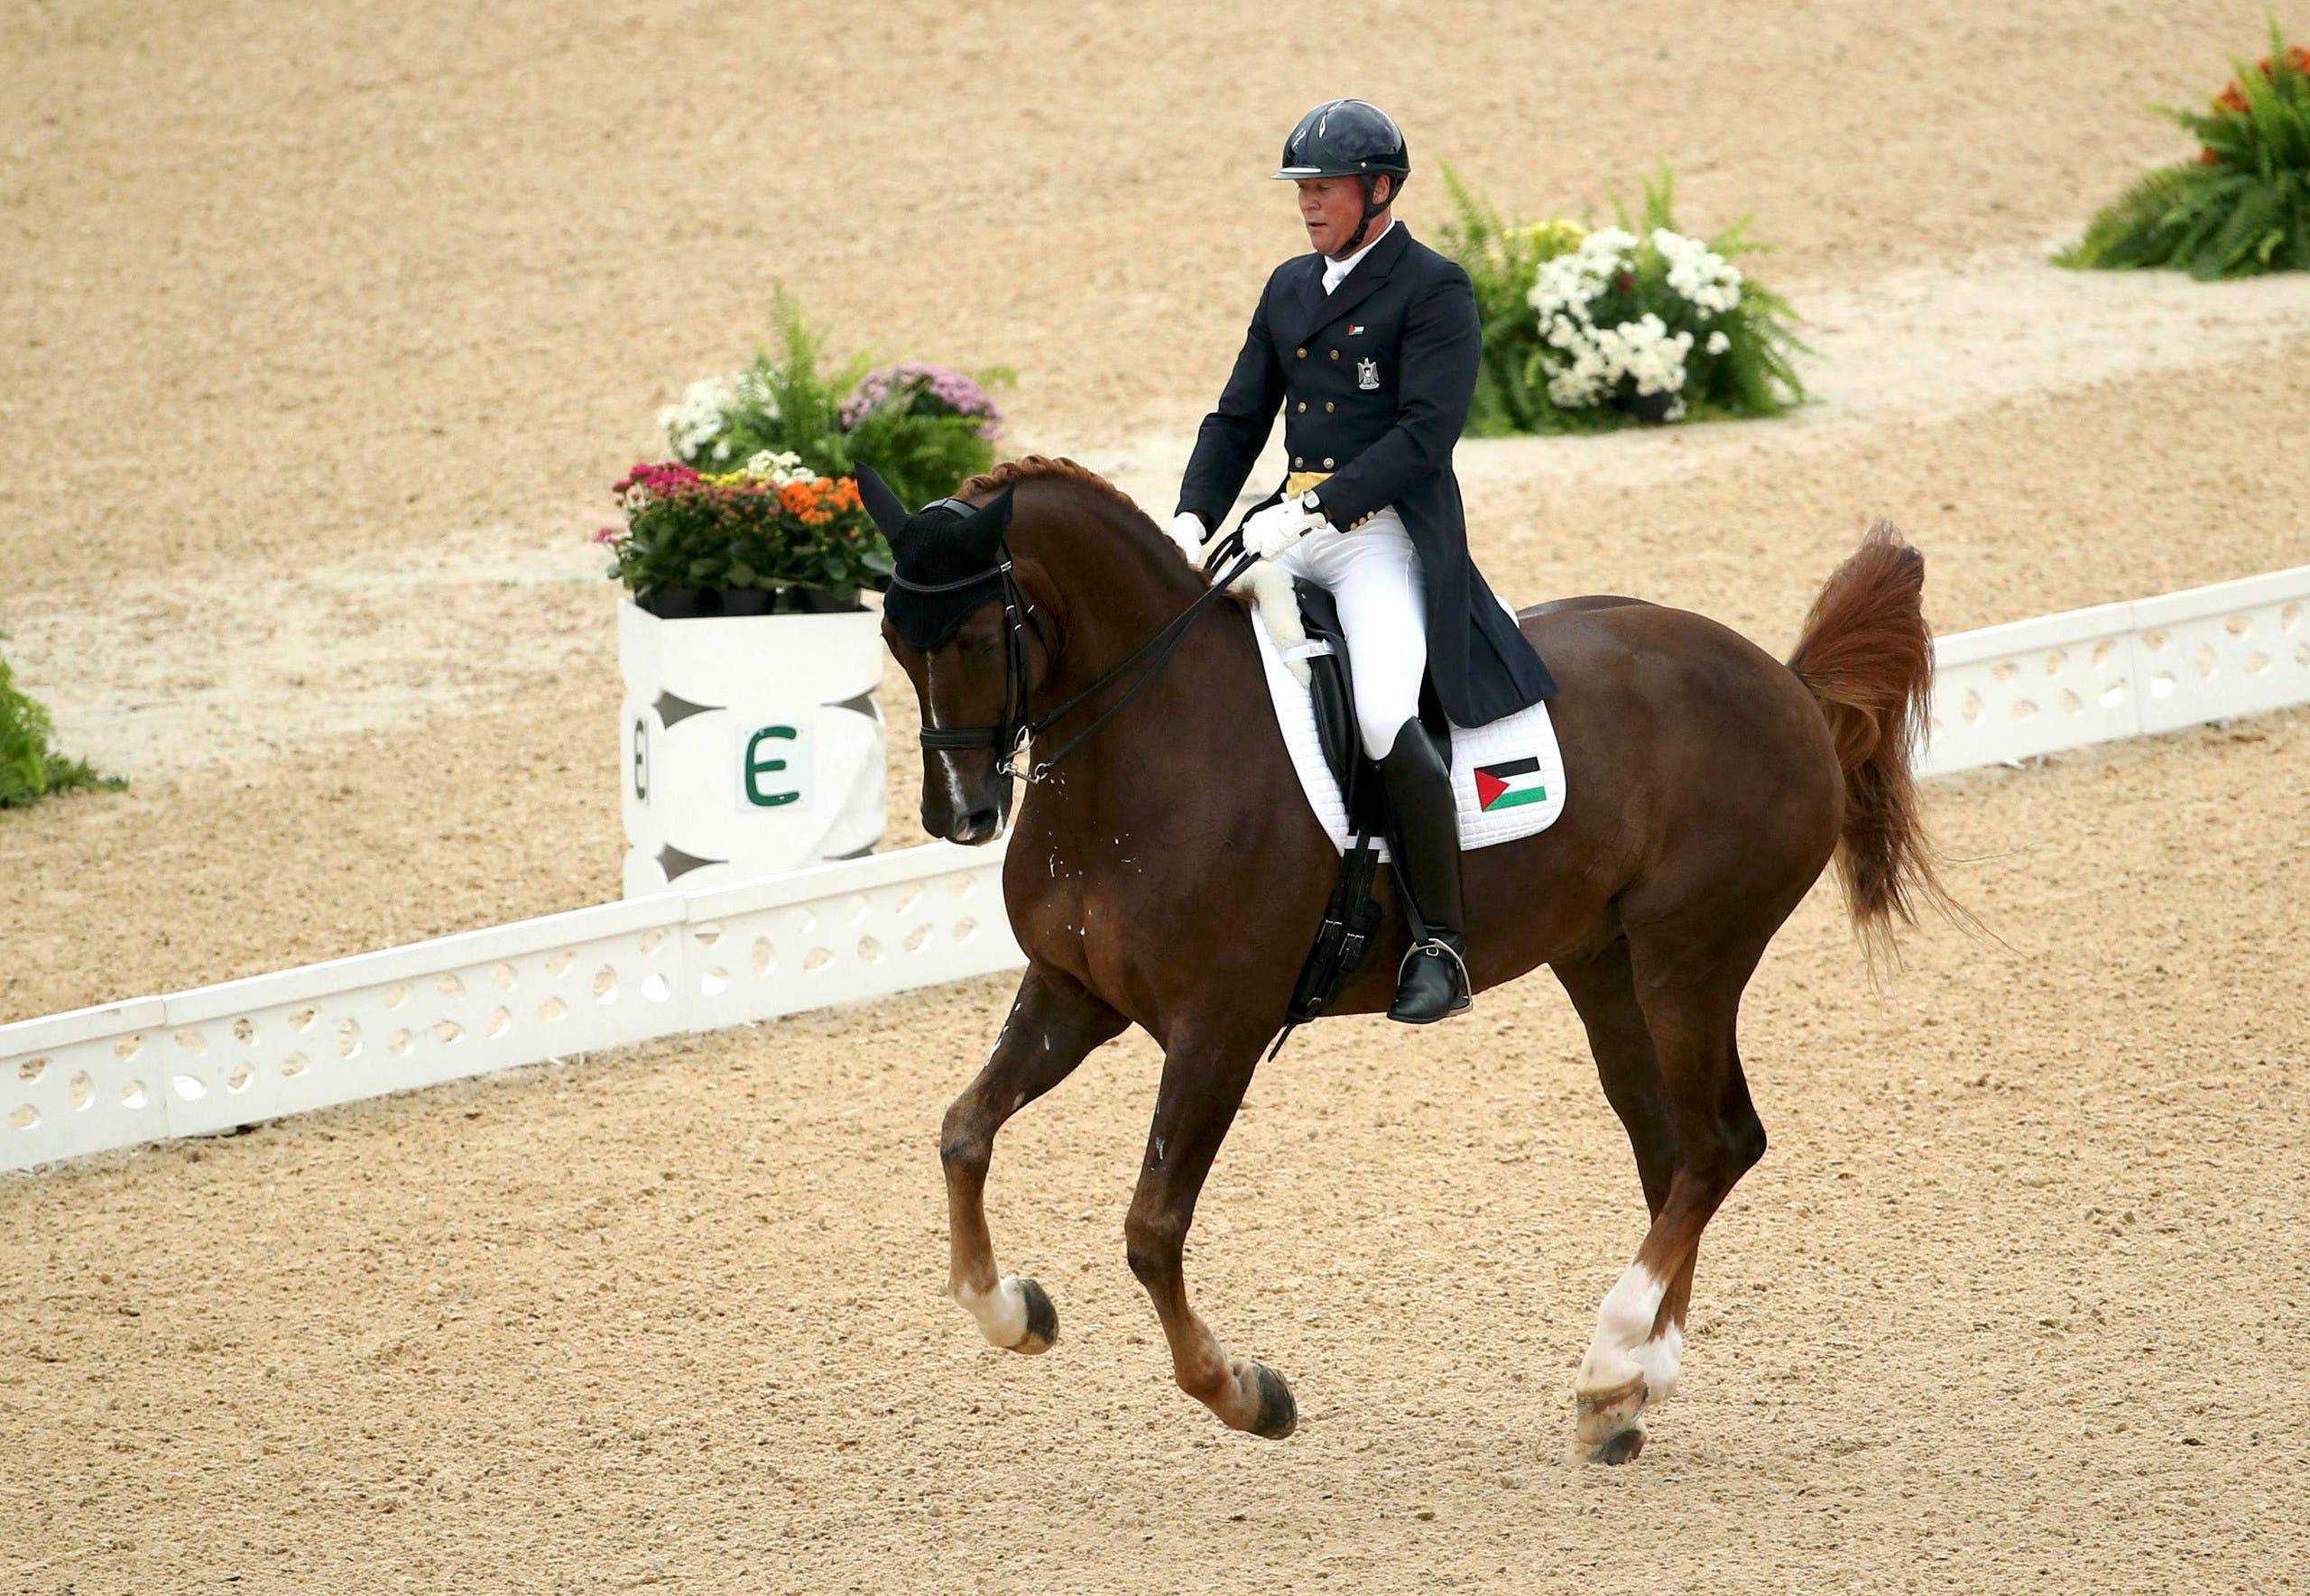 Christian Zimmermann (PLE) of Palestinian Territories riding Aramis 606 competes. (Reuters)